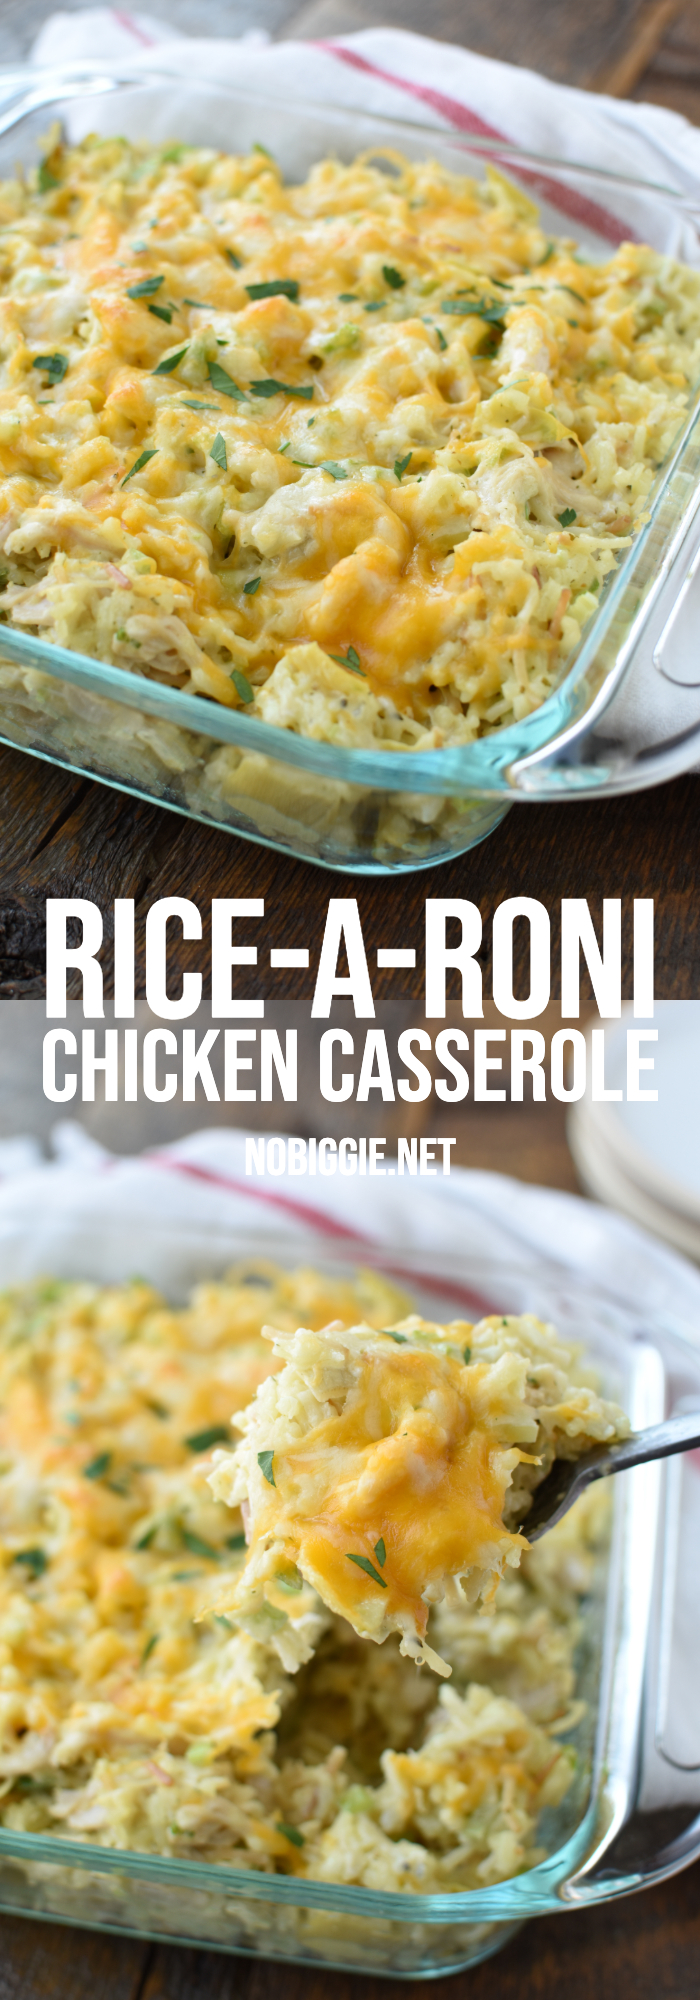 Rice A Roni Chicken Casserole